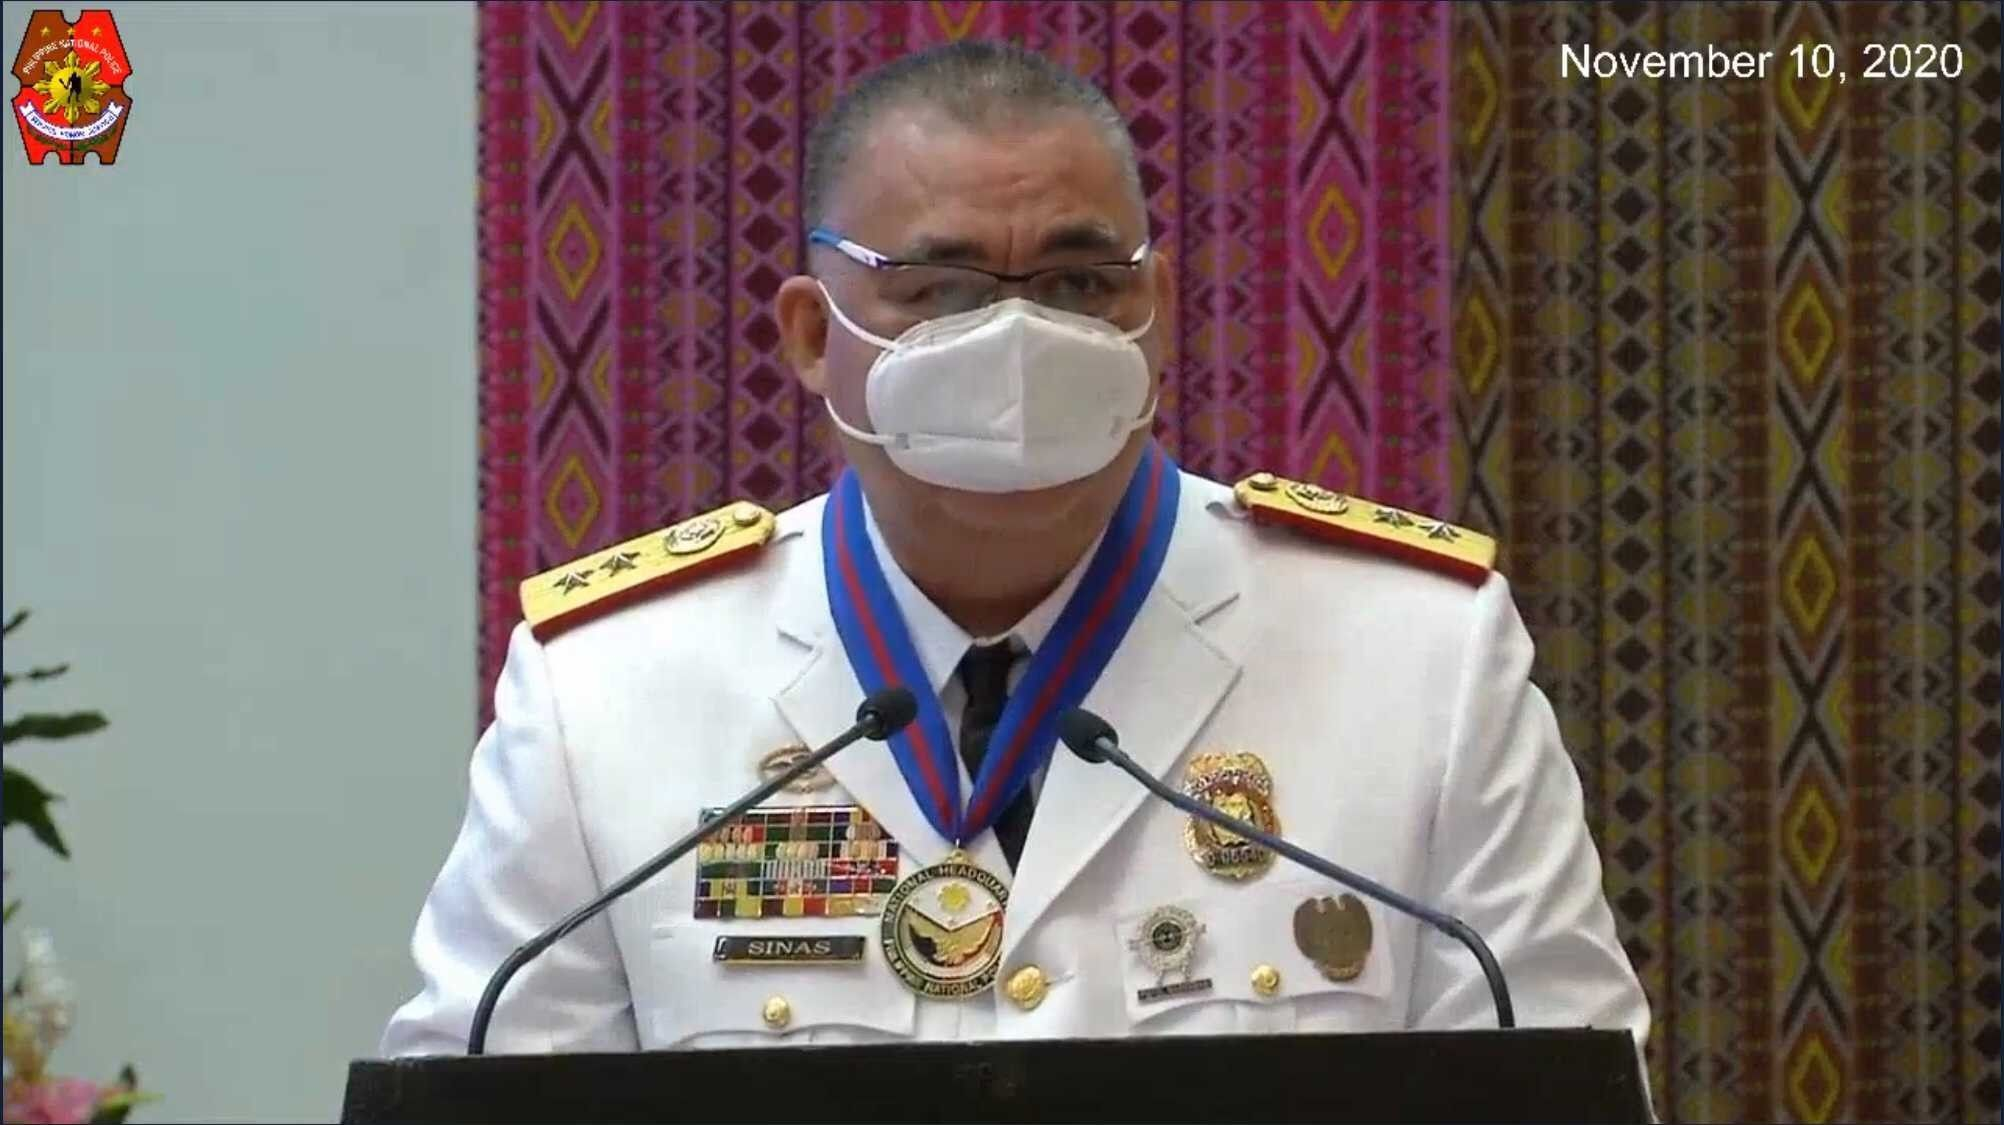 Sinas told to uphold justice as new top cop vows to continue drug war